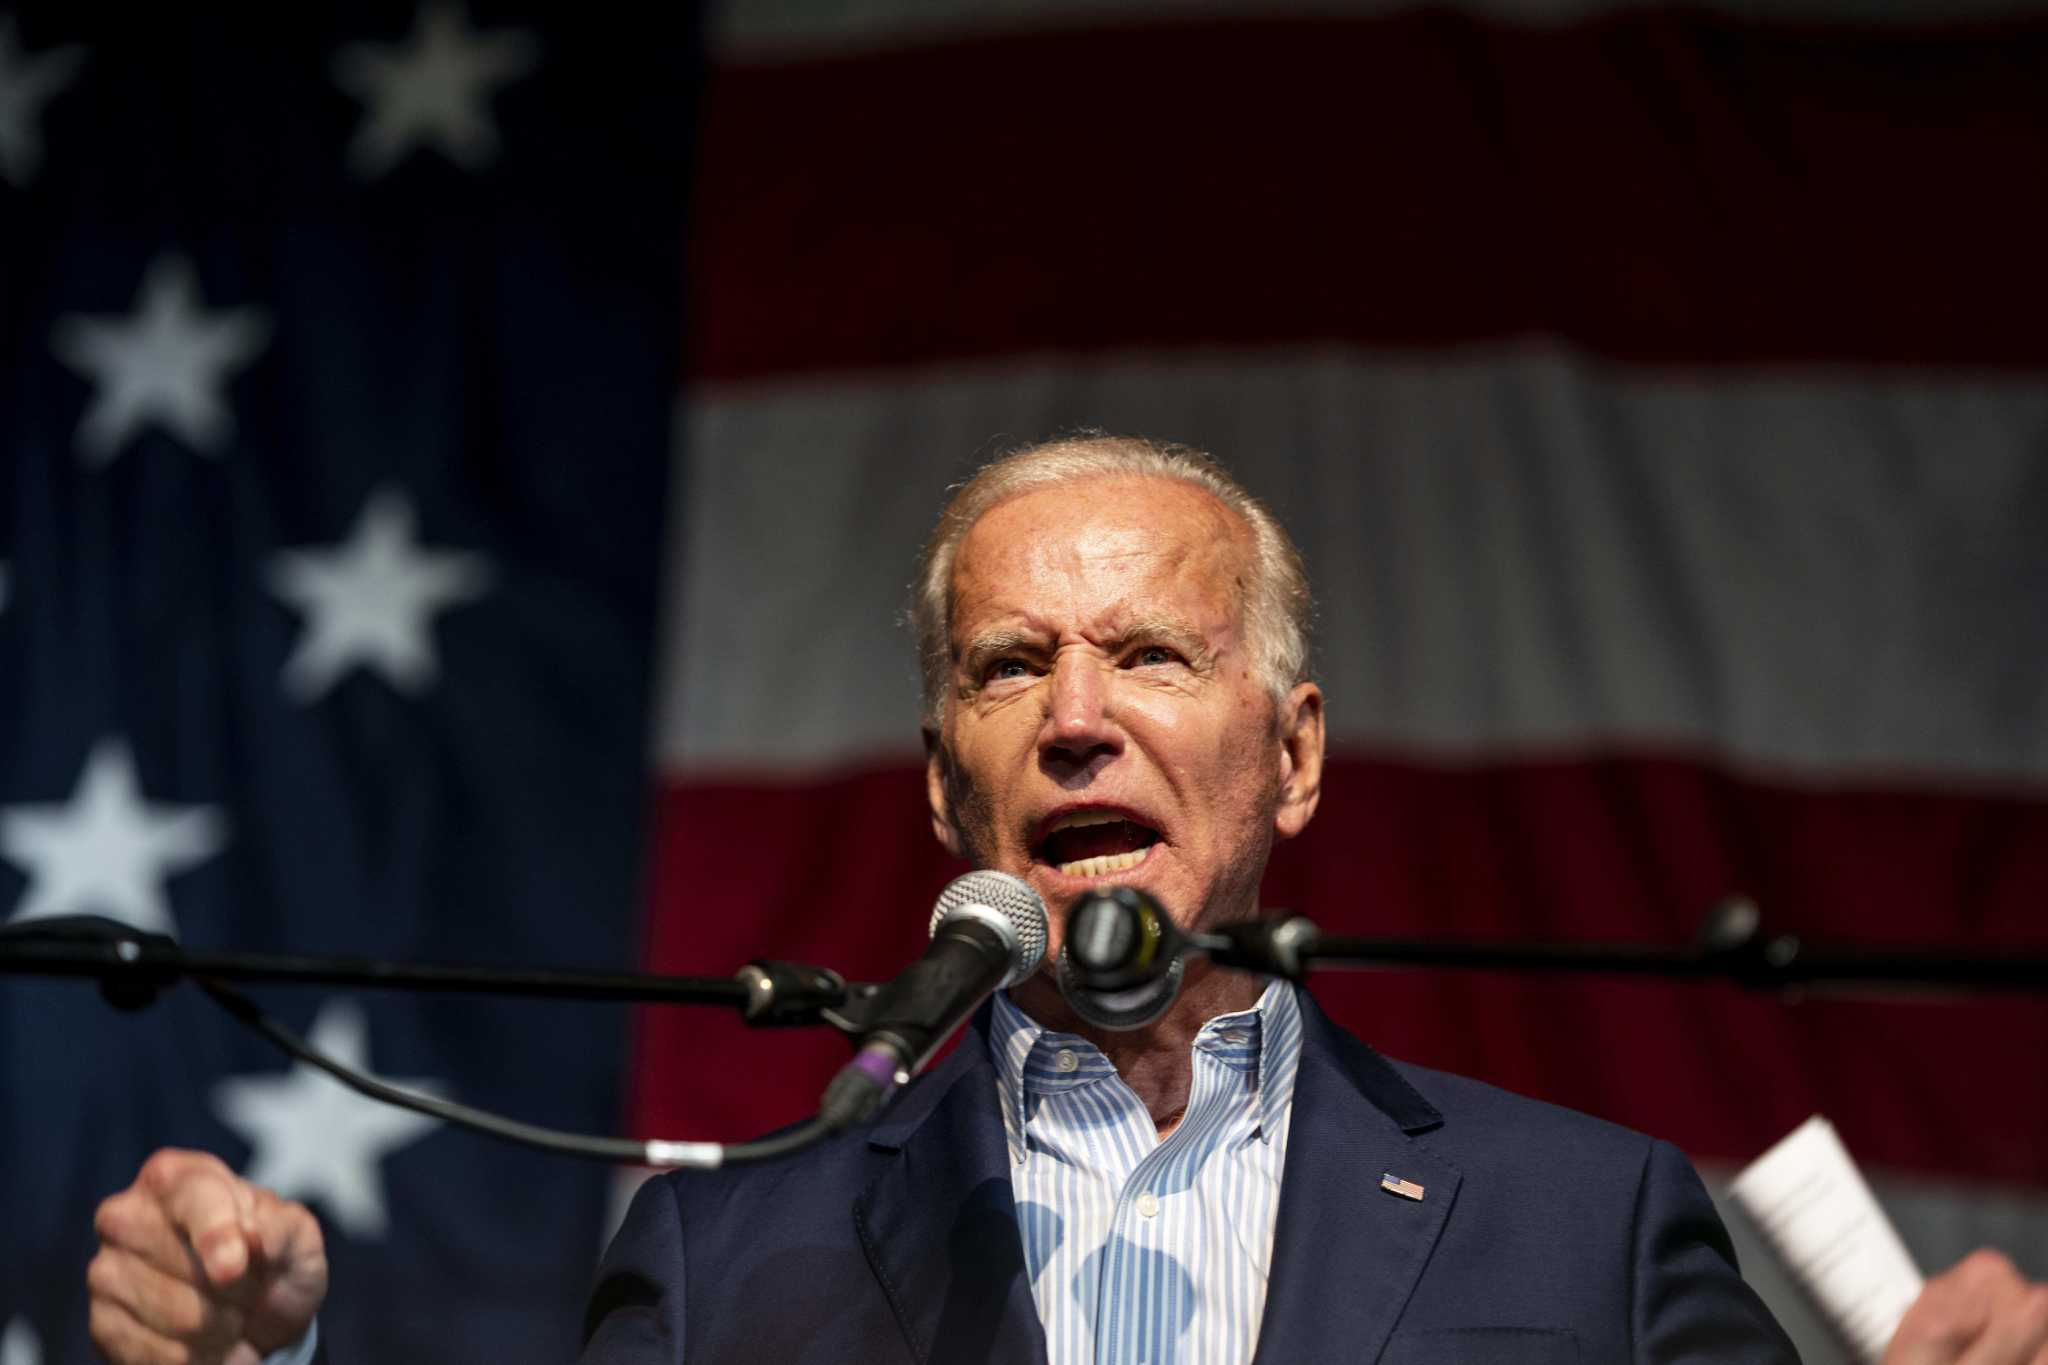 For Joe Biden, some lessons from Mitt Romney's 2012 campaign?